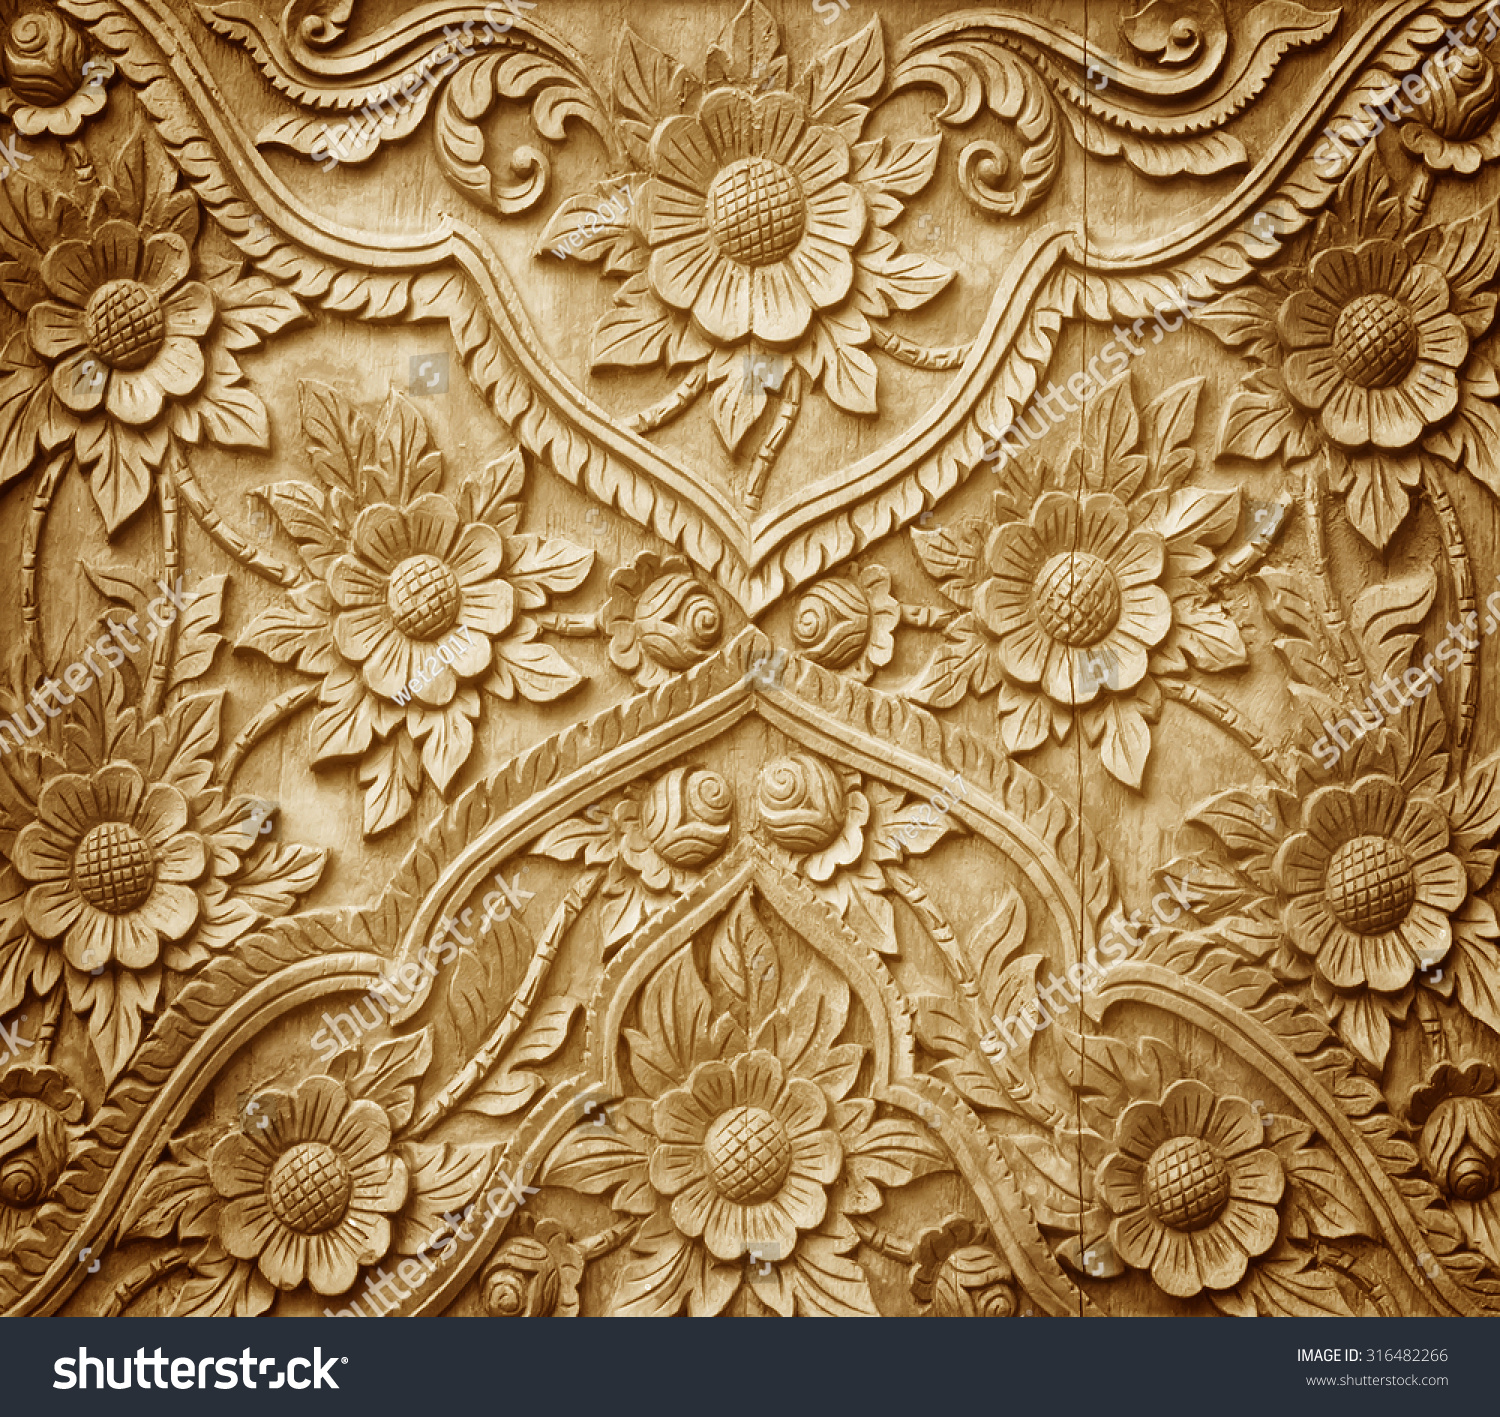 Flower wood carving patterns year of clean water